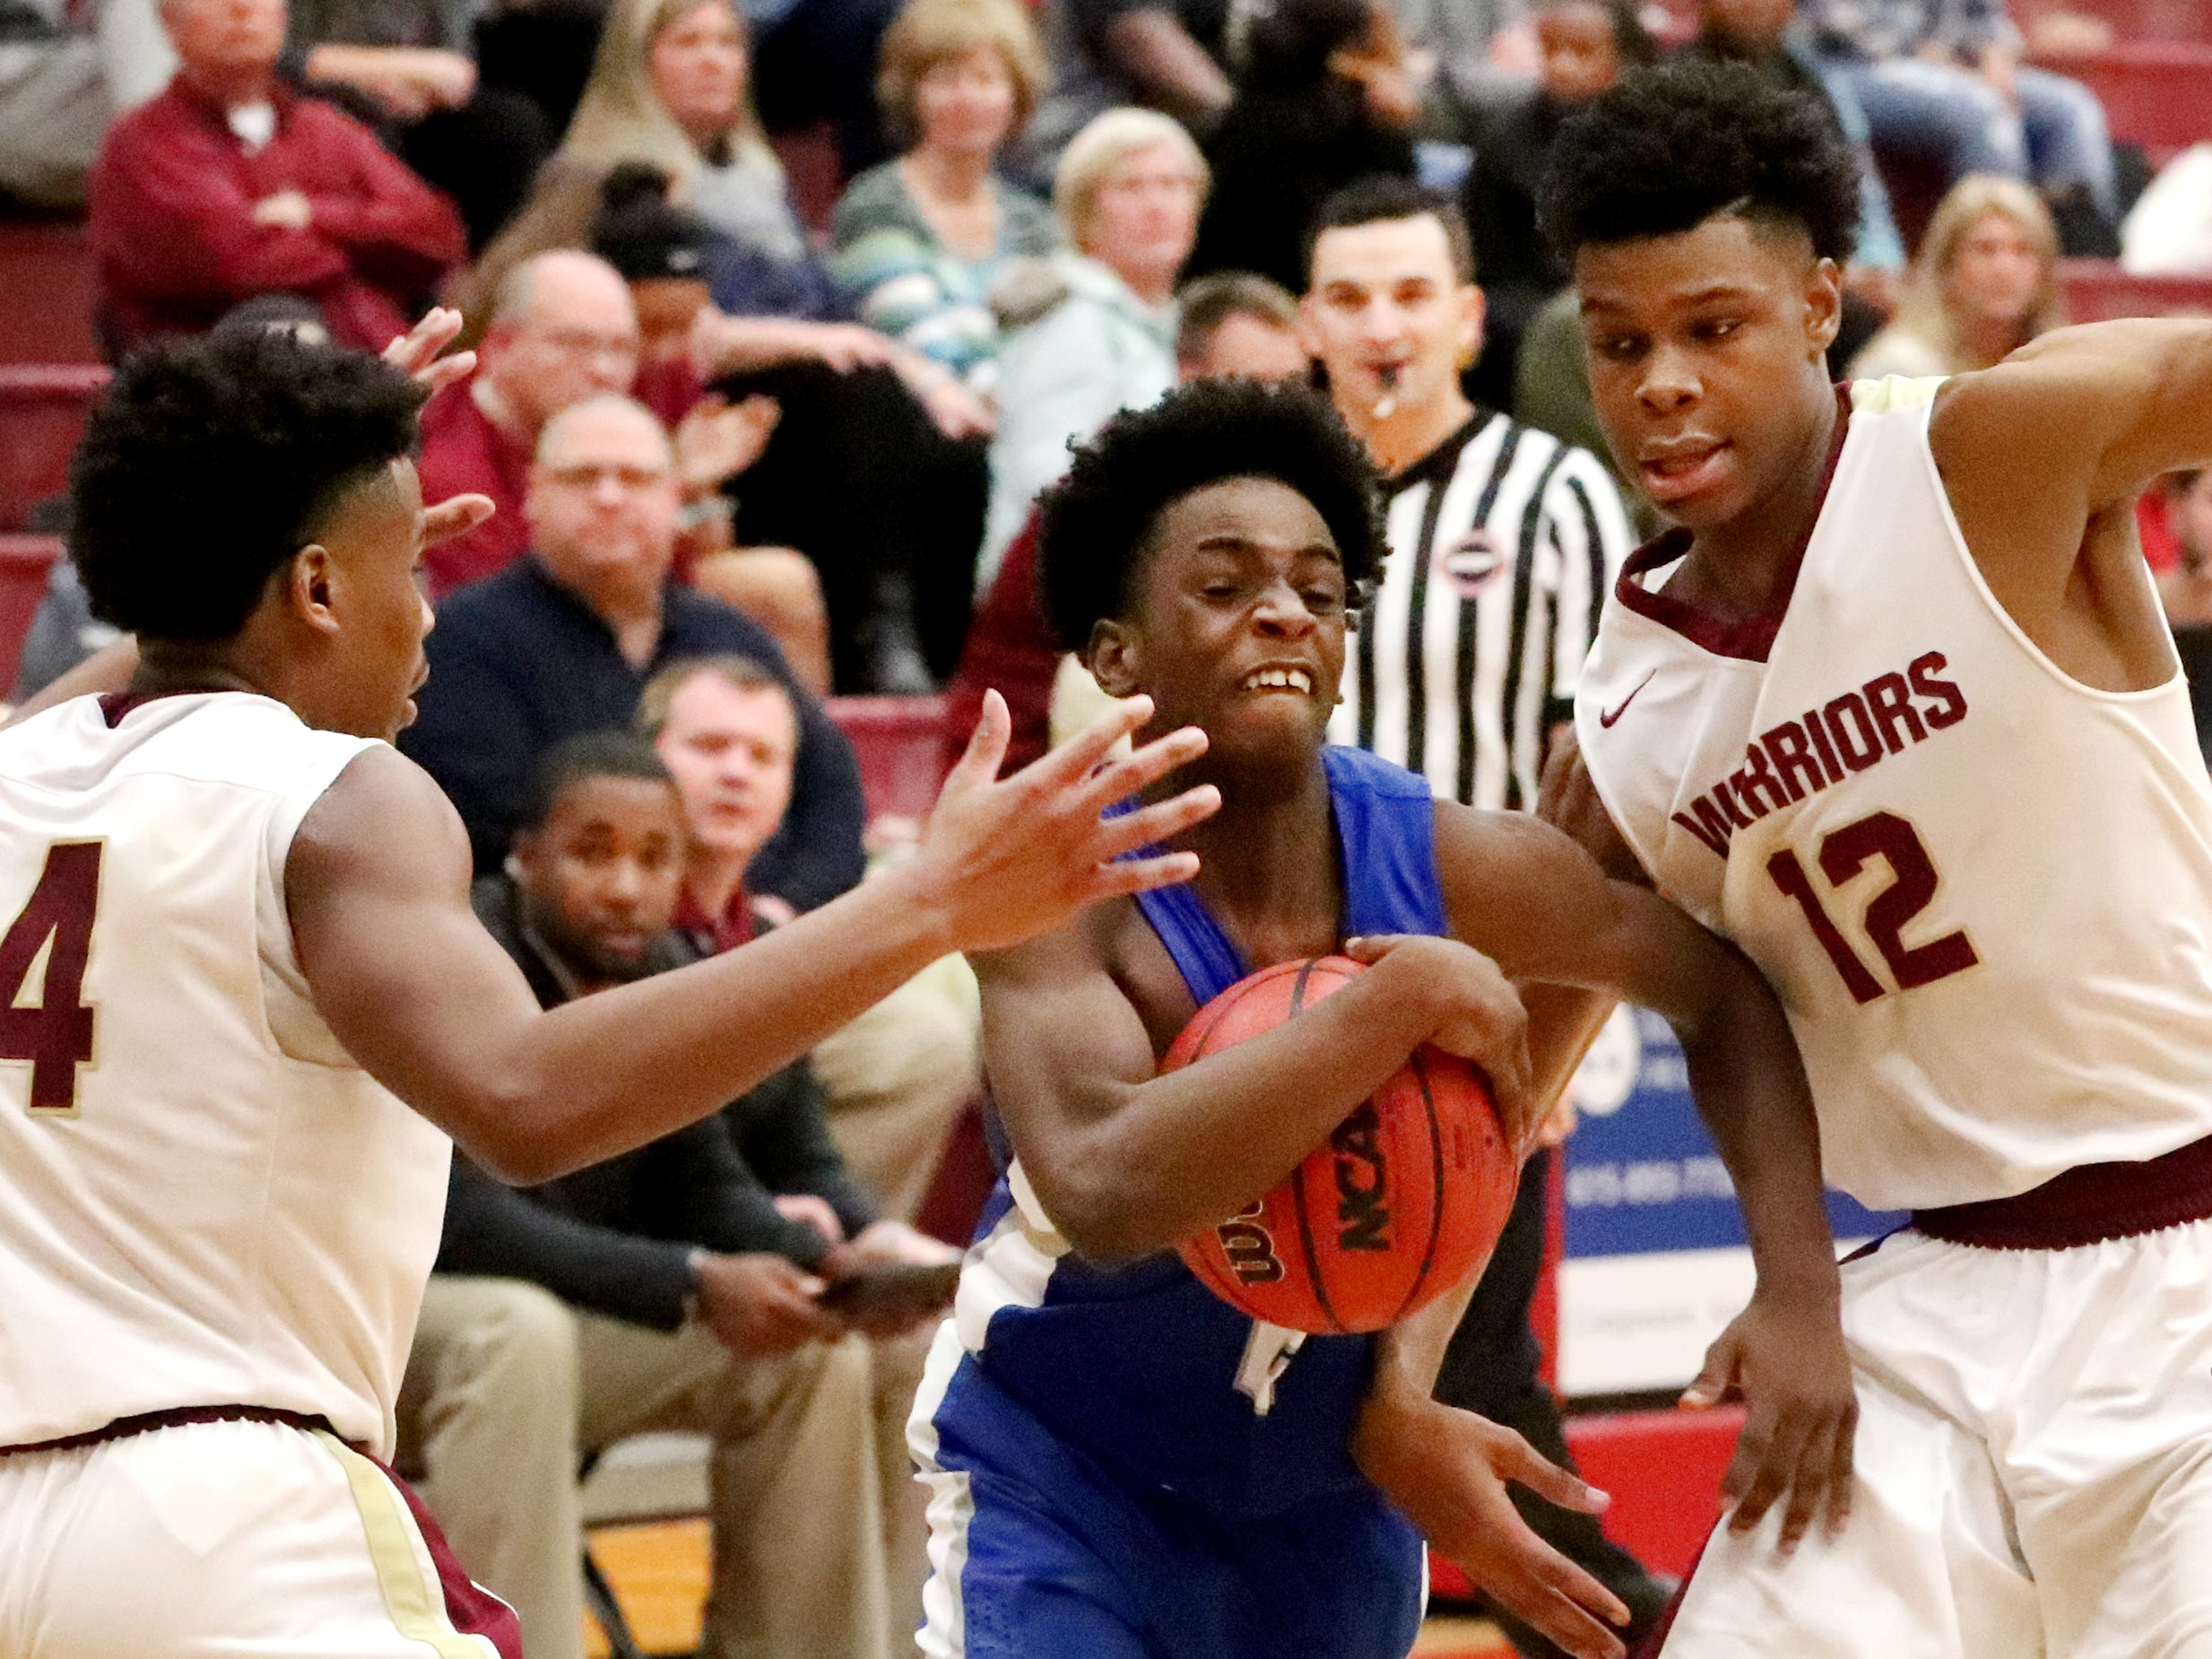 Lebanon's Malcolm Logue (2) pushes through RiverdaleÕs Deron Perry (14) and Elijah Cobb (12) to head to the basket during the game at Riverdale on Friday, Nov. 30, 2018.